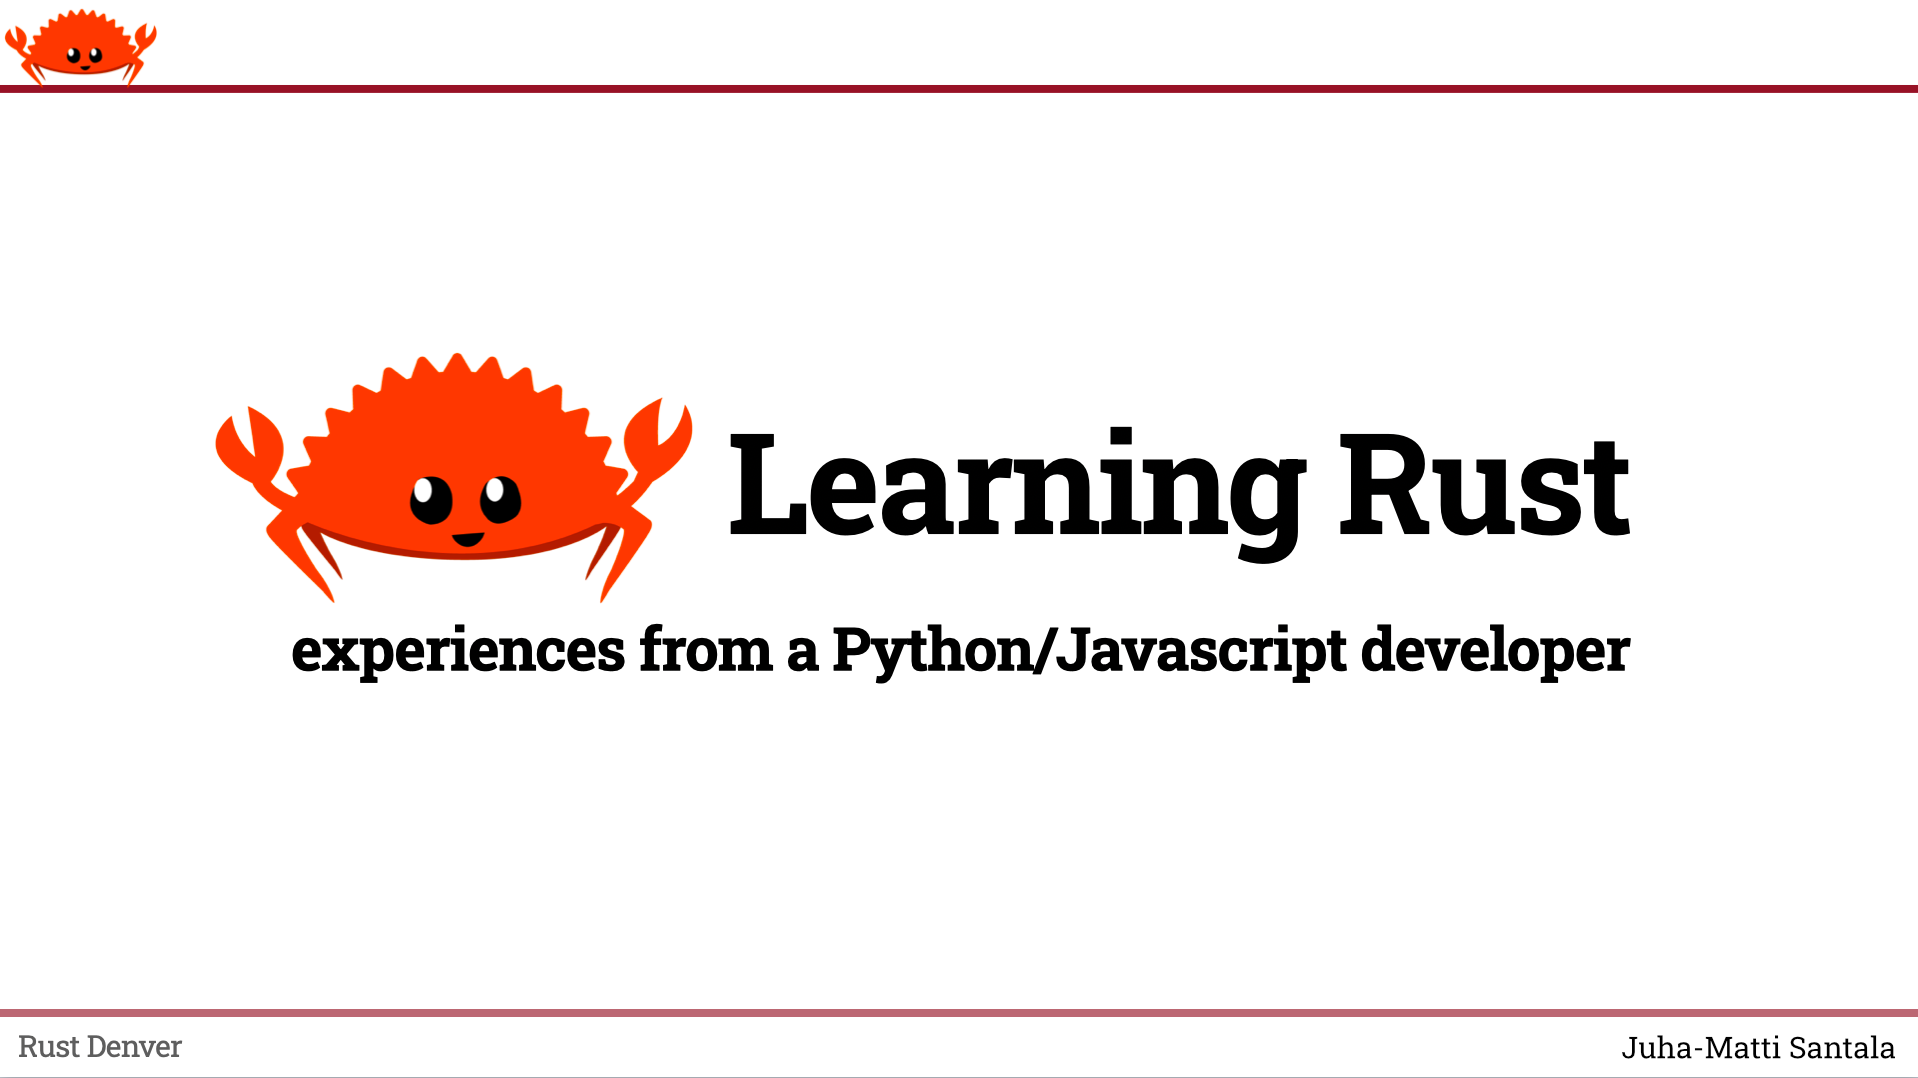 """A presentation slide with Ferris the Rustacean mascot and text """"Learning Rust - experiences from a Python/Javascript developer"""""""